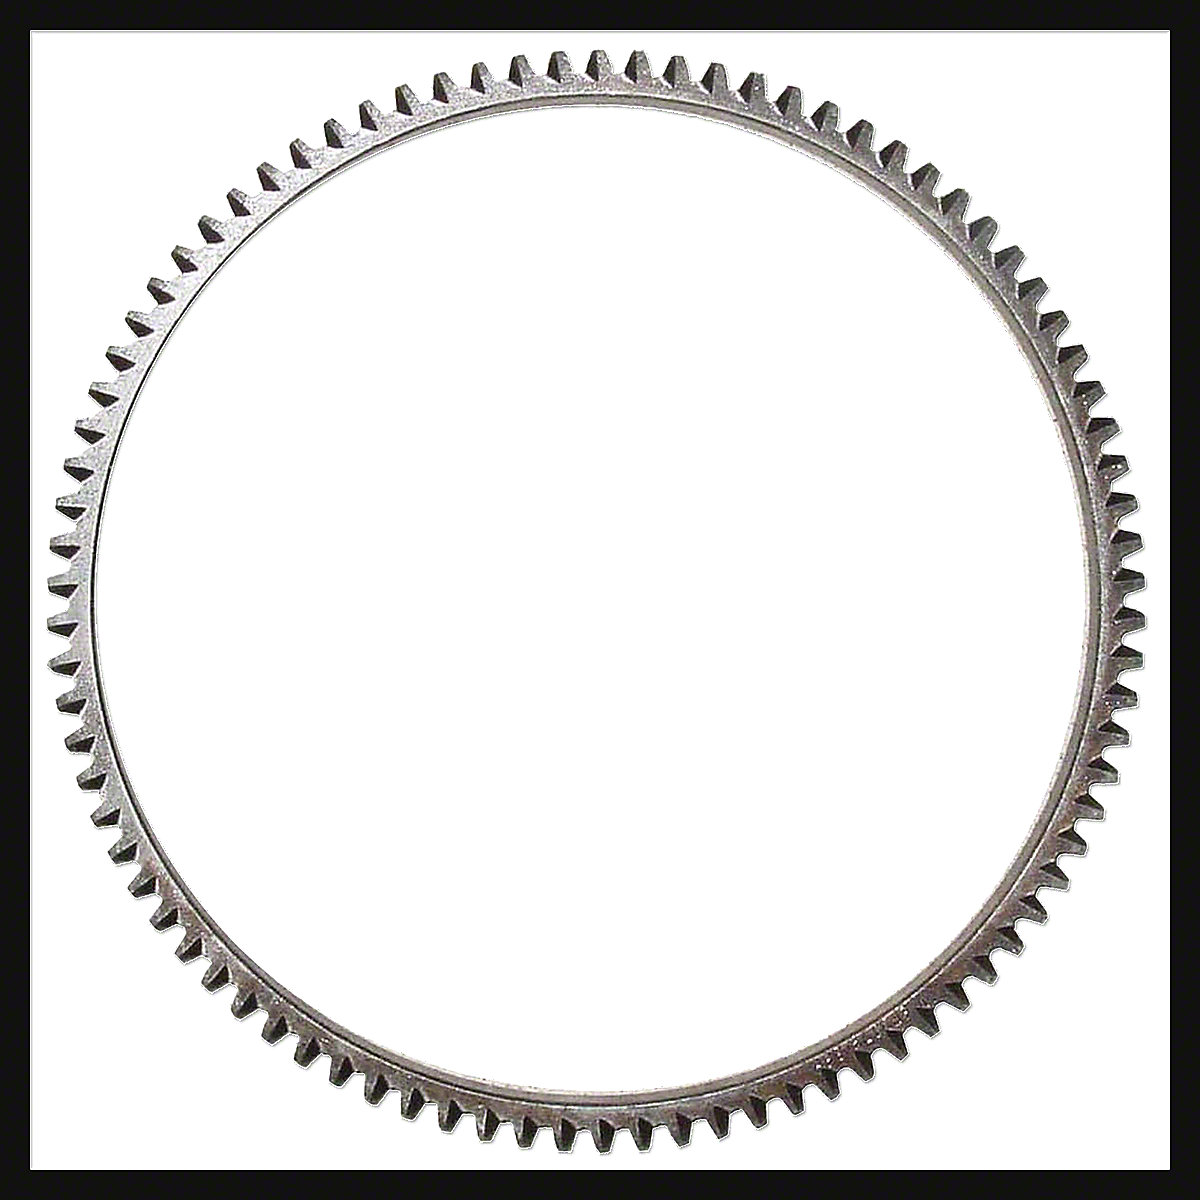 Flywheel Ring Gear For Massey Harris: Pacer 16, Pony.